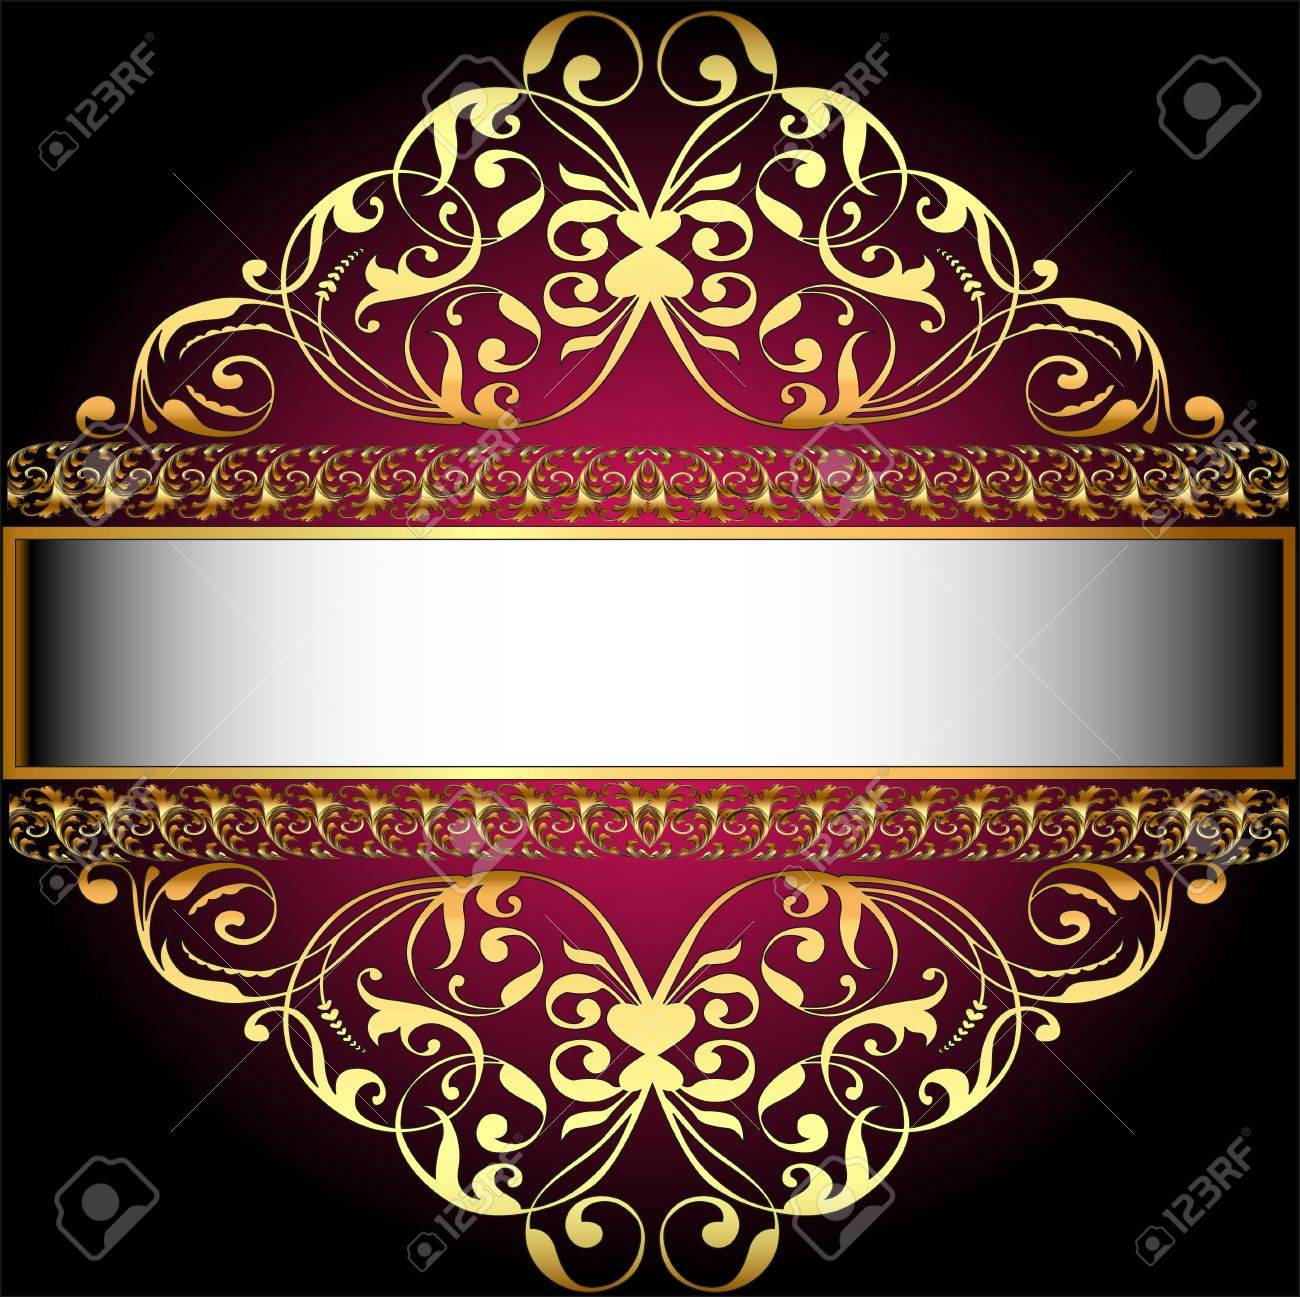 vintage background with golden floral ornament Stock Vector - 15899262